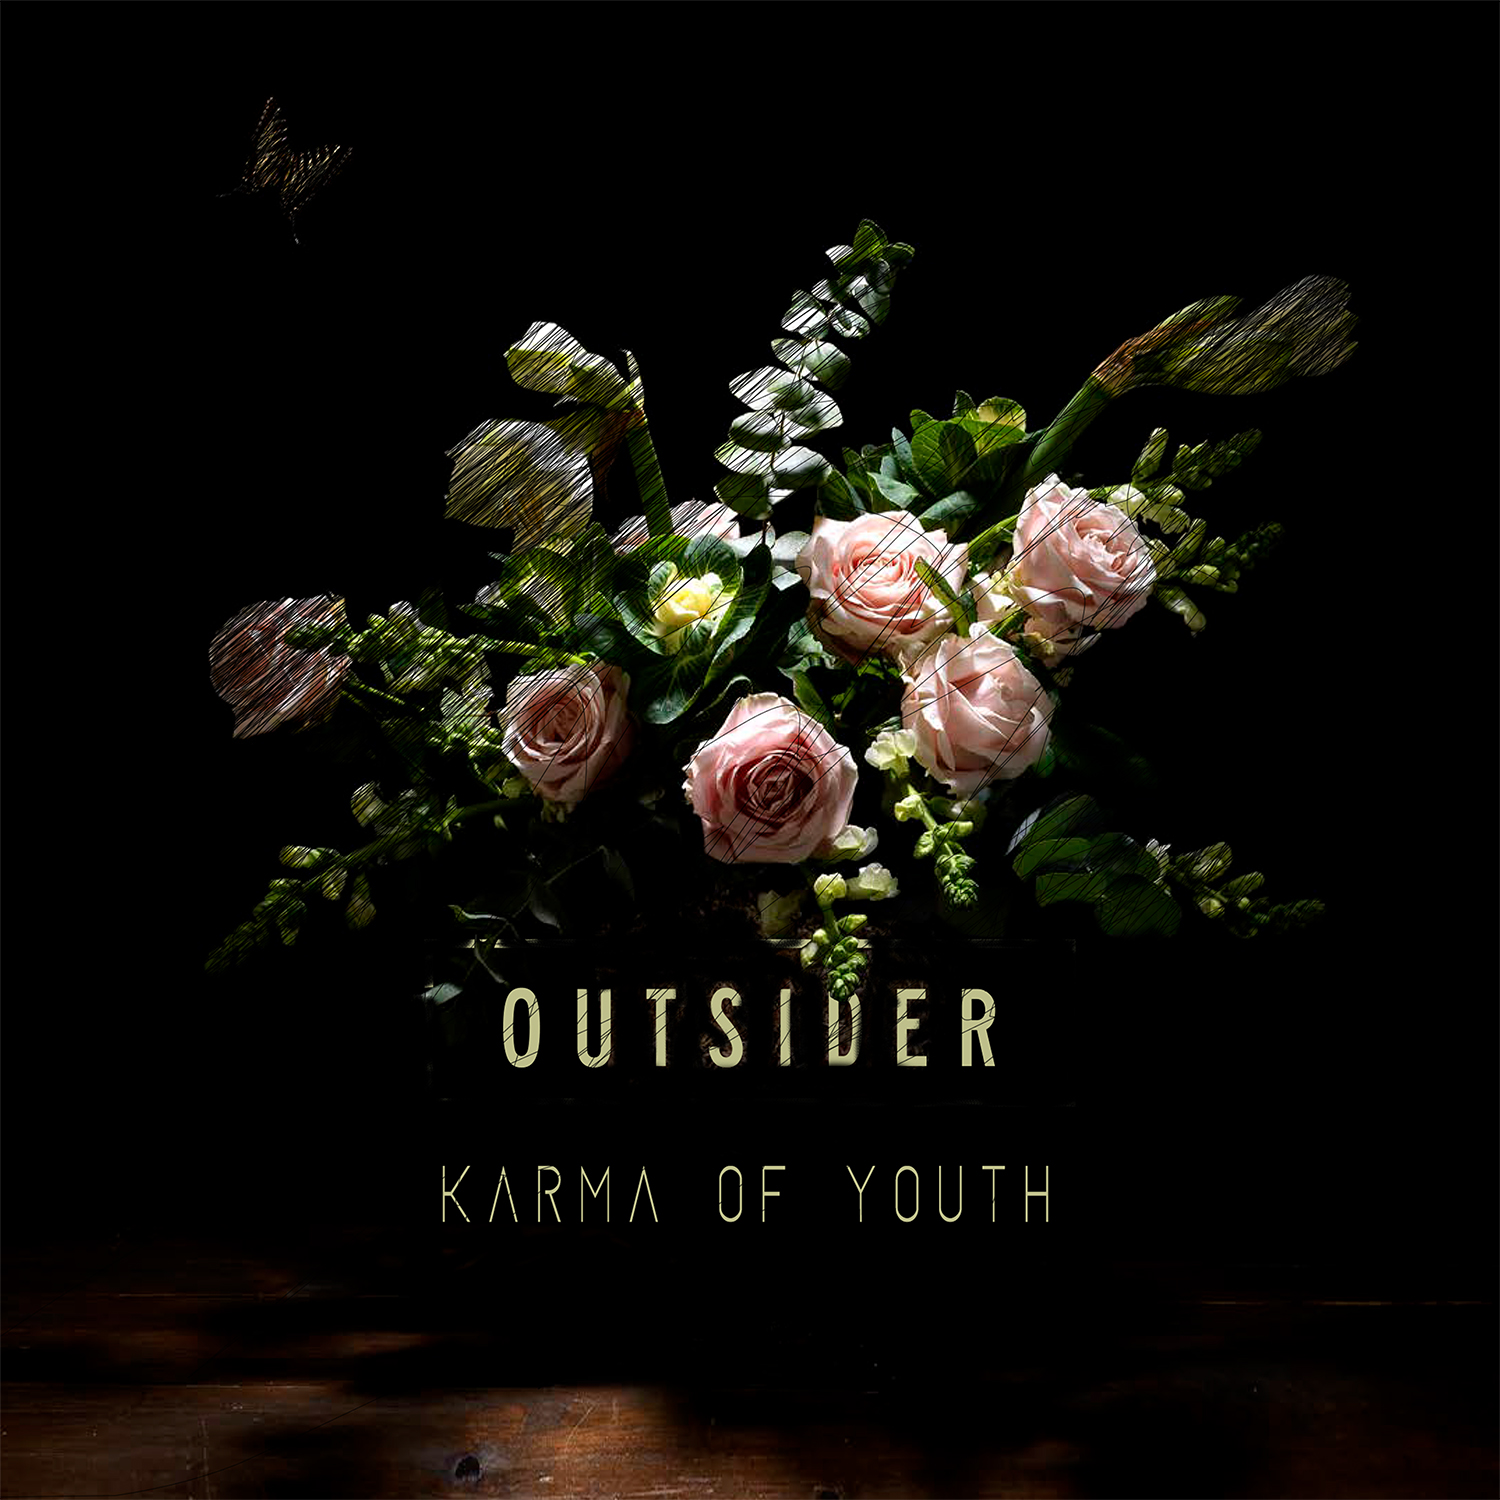 OUTSIDER – Karma of Youth CD (Pre-Order)